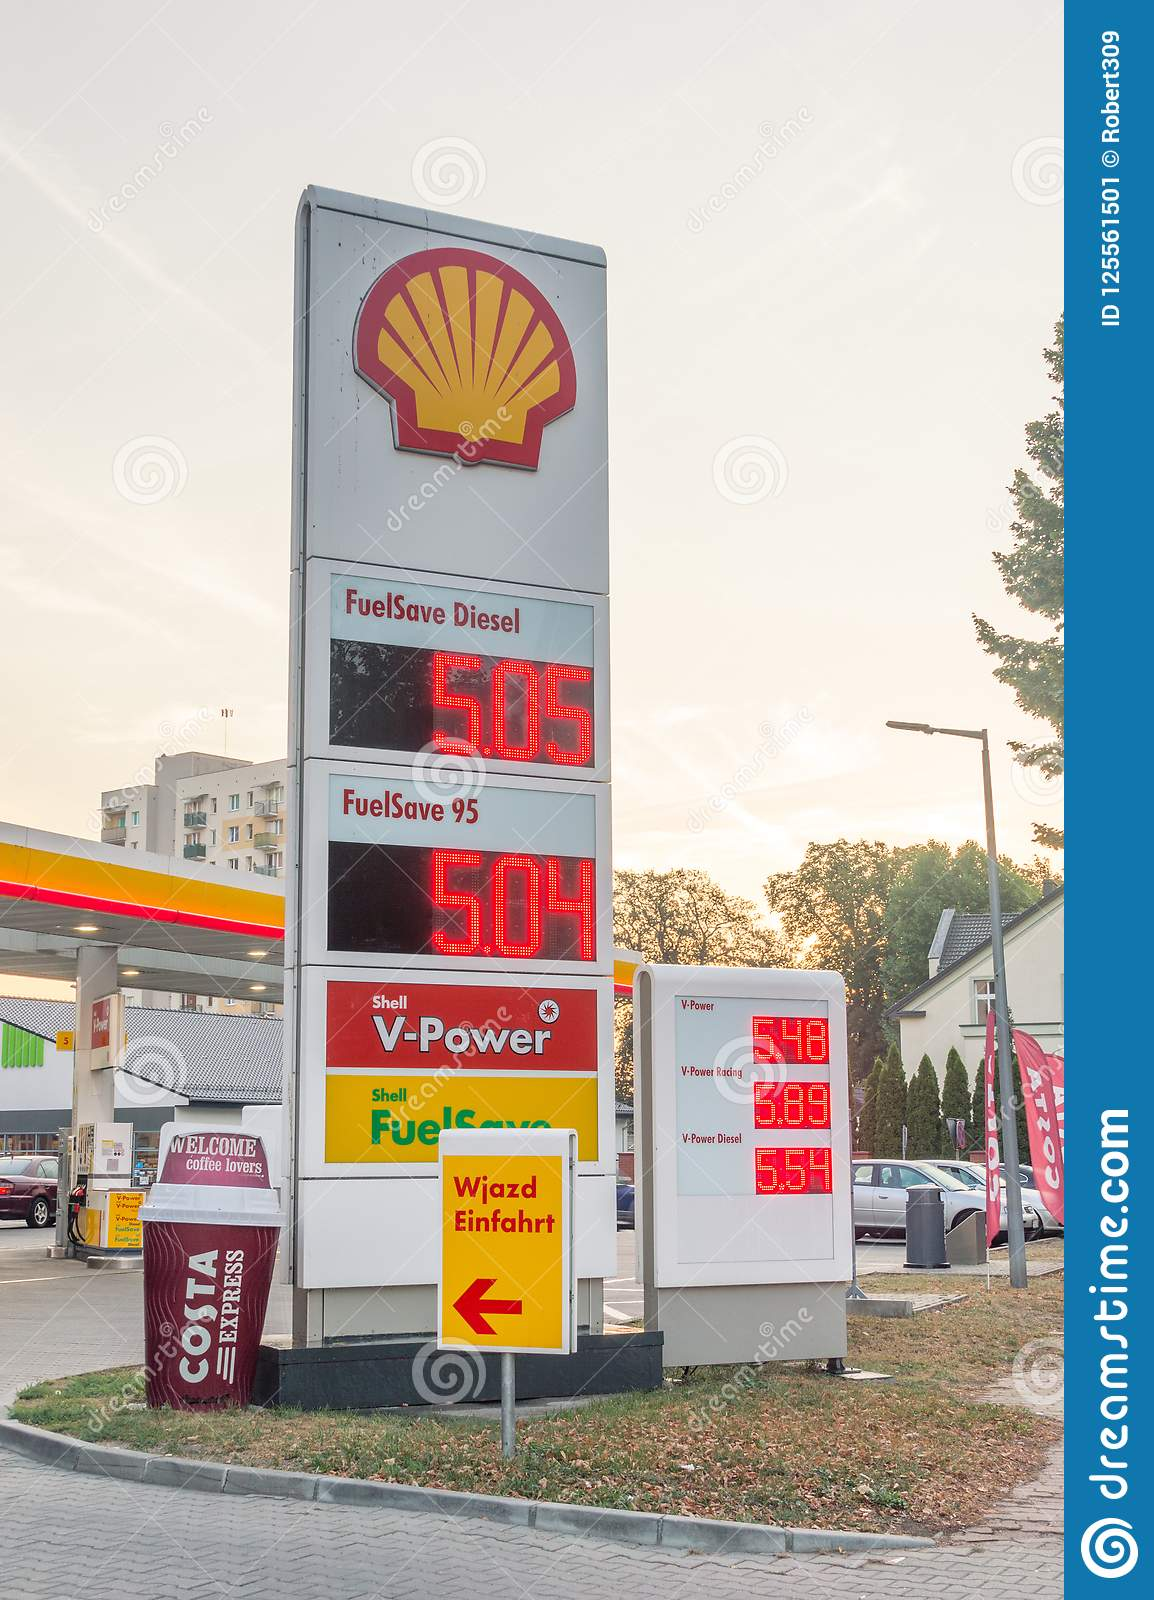 Price is per liter in Polish Zloty at Shell gas station in the morning.